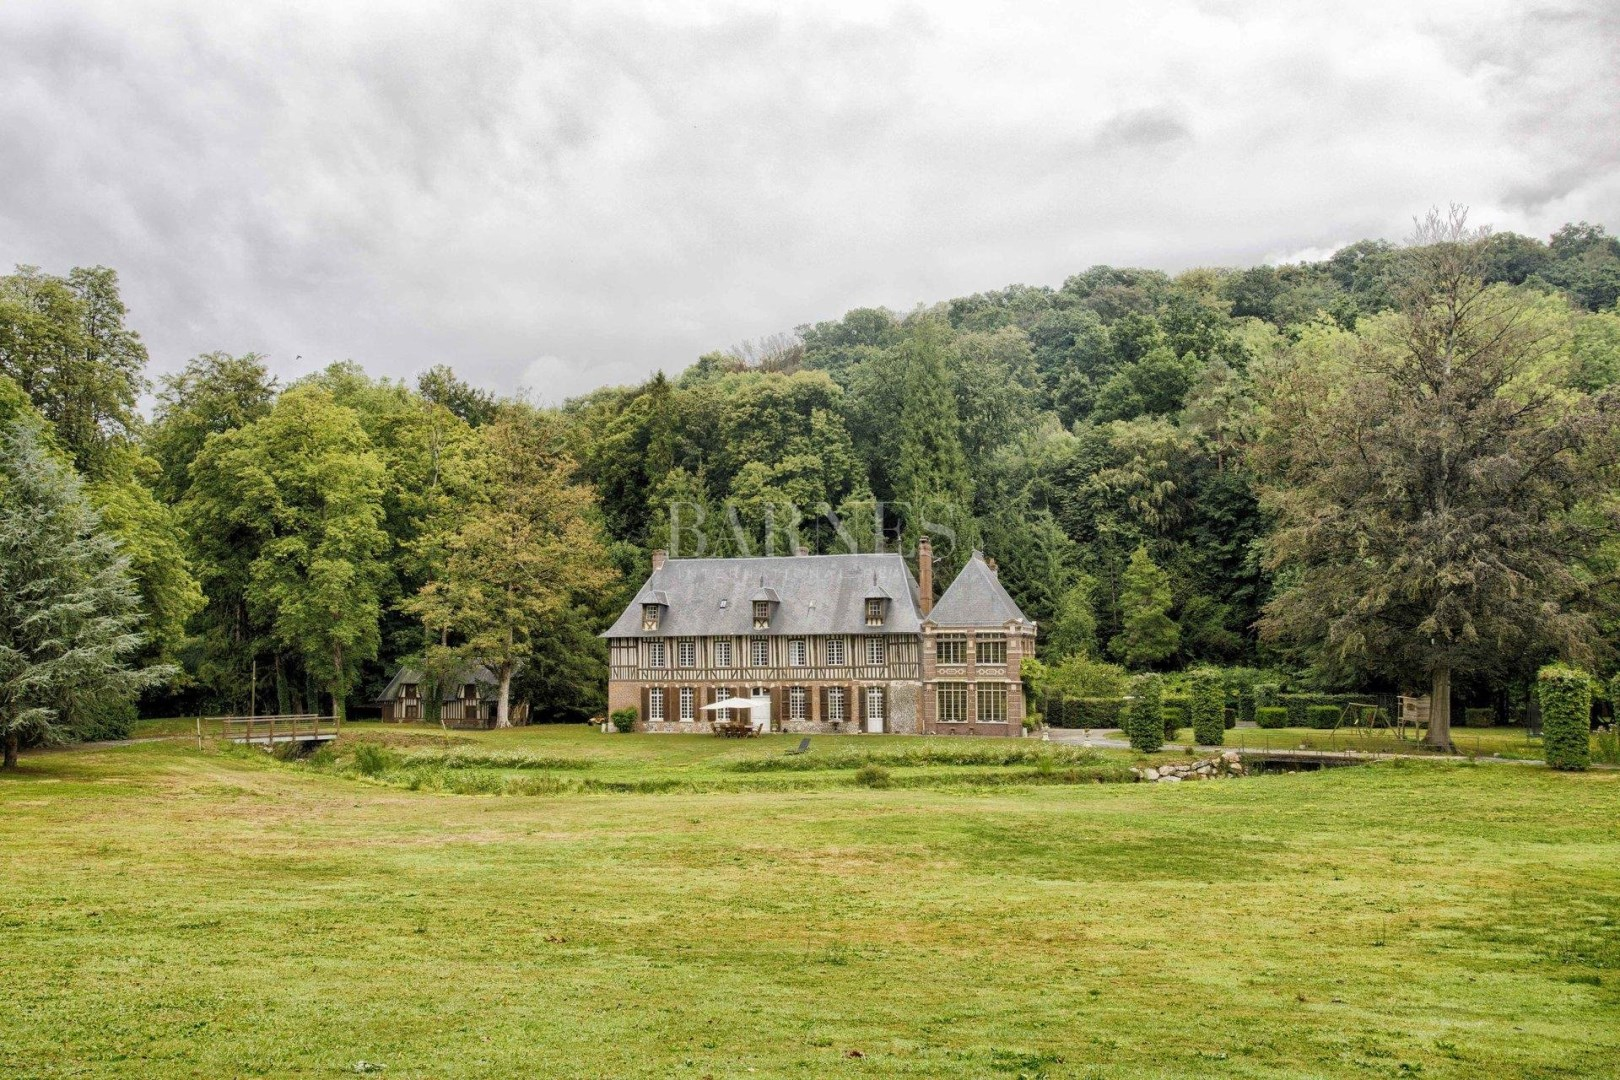 Luxe Listing Beautiful Manor Circa 1650 On 17 Acres In Normandy Pont Audemer France 1 600 000 Escapist To The Country